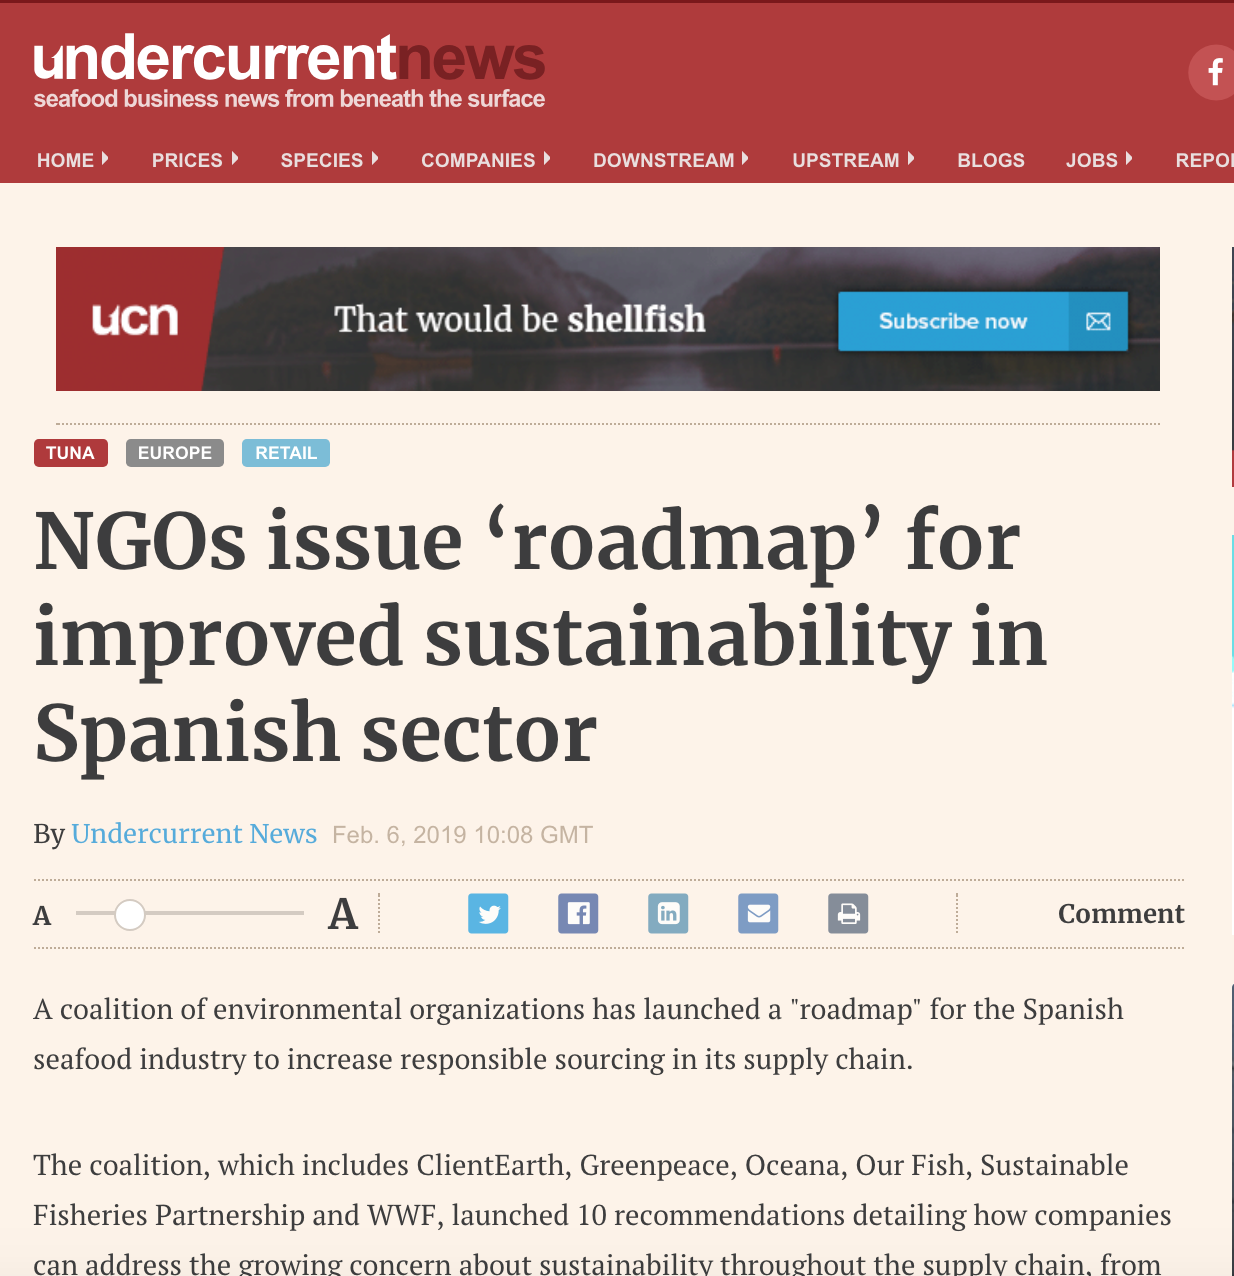 NGOs issue 'roadmap' for improved sustainability in Spanish sector